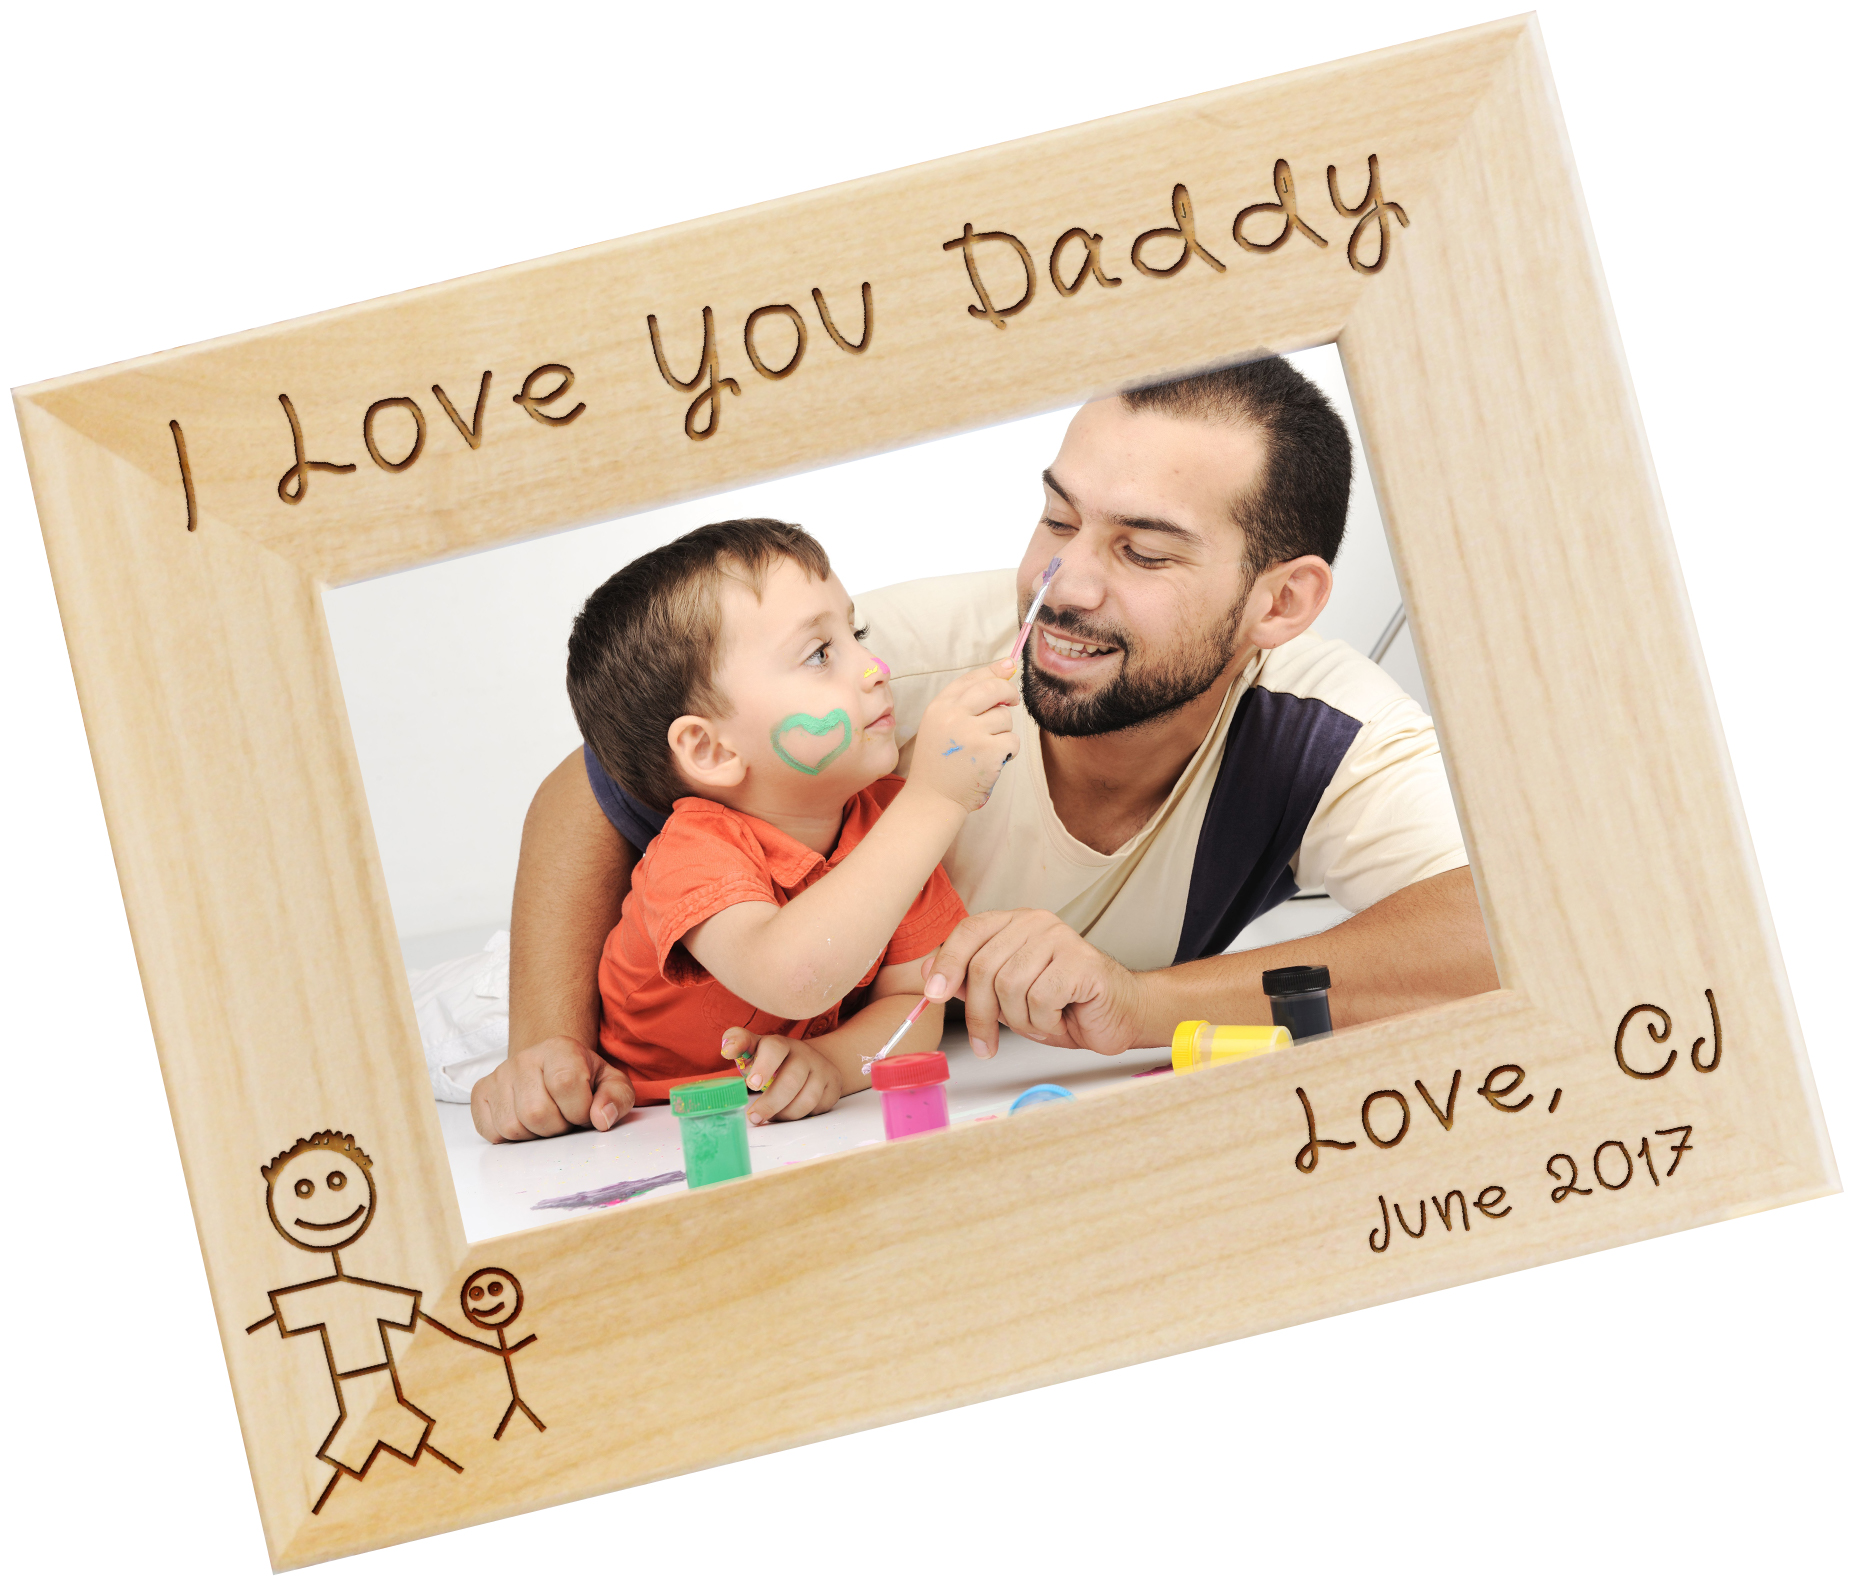 I Love My Daddy Personalized Photo Frame